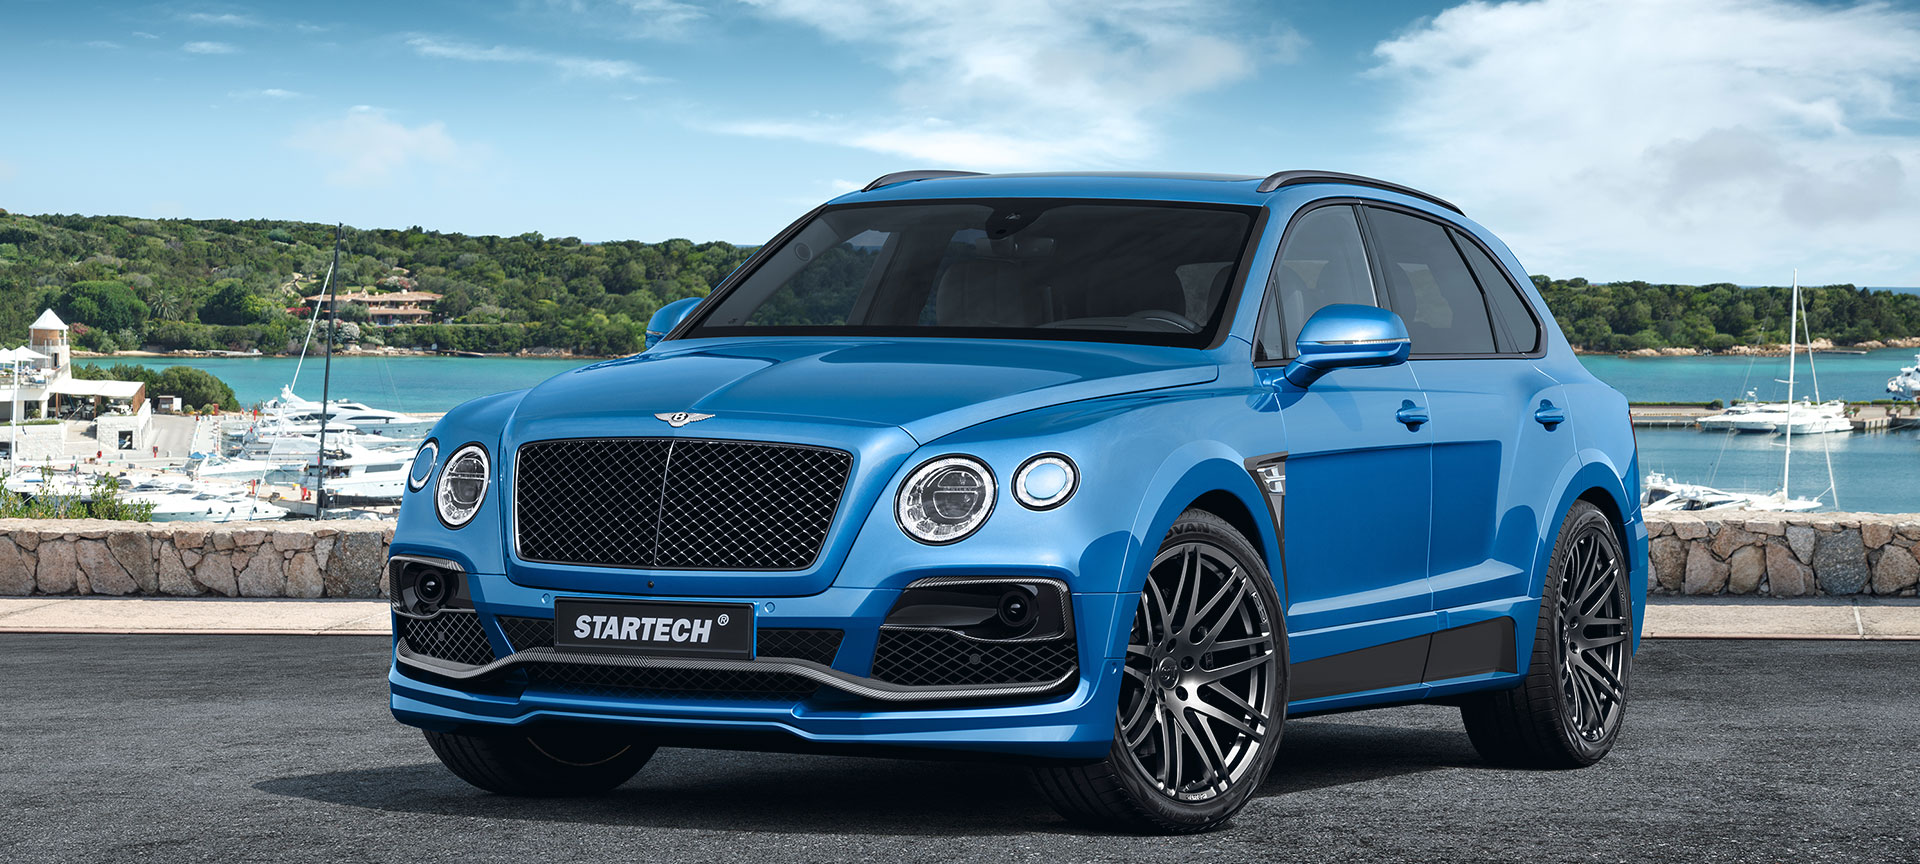 Land Rover New >> The first further refined Bentley Bentayga comes from STARTECH | STARTECH Refinement